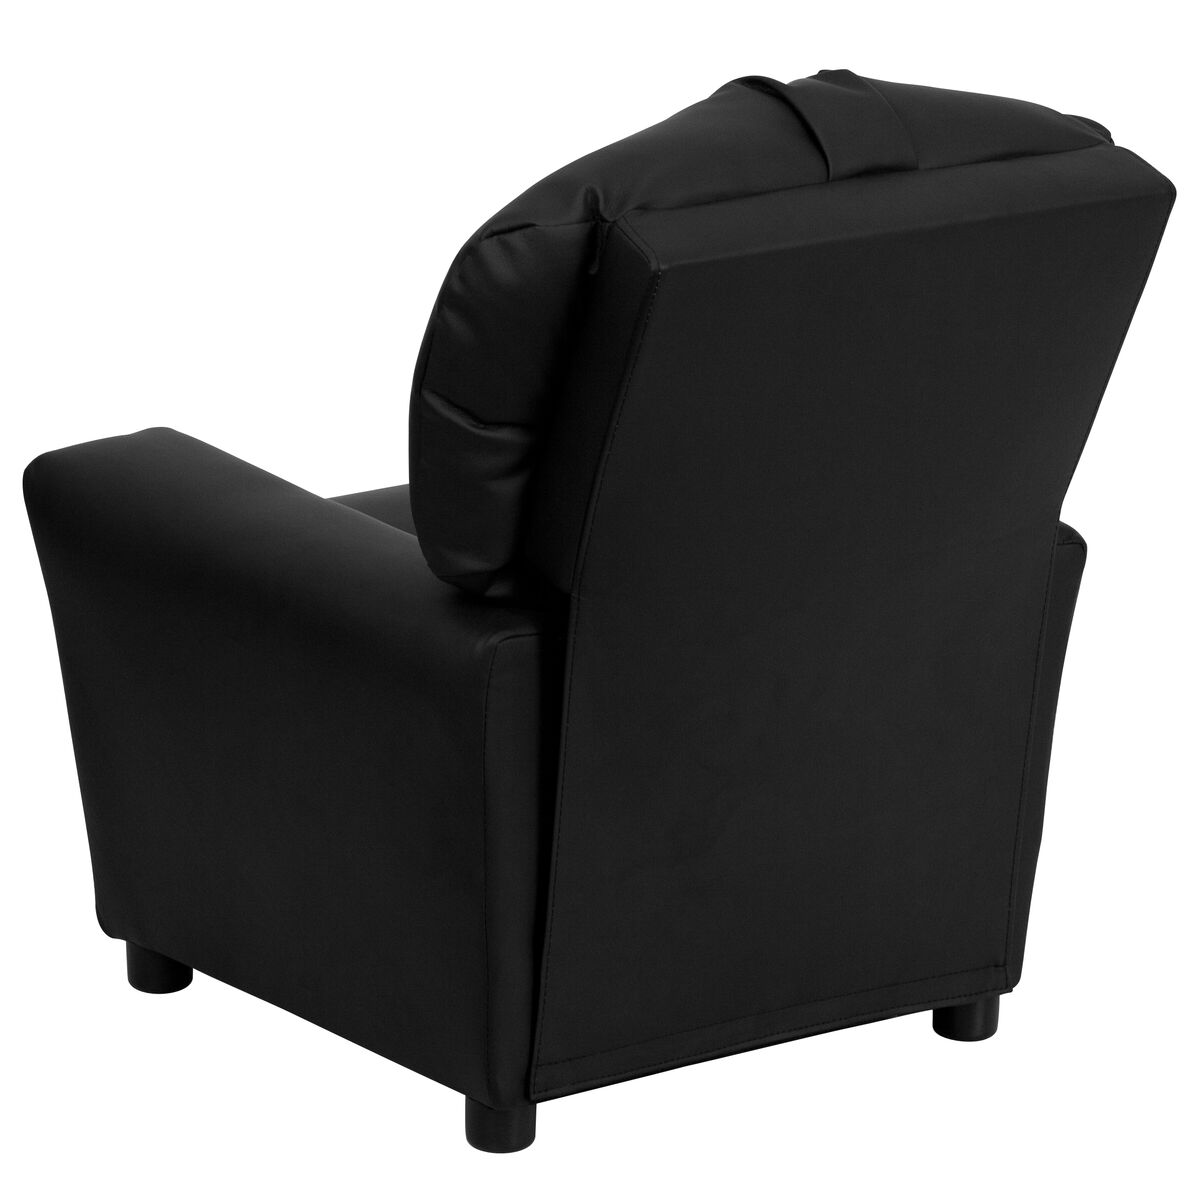 Tremendous Contemporary Black Leather Kids Recliner With Cup Holder Machost Co Dining Chair Design Ideas Machostcouk